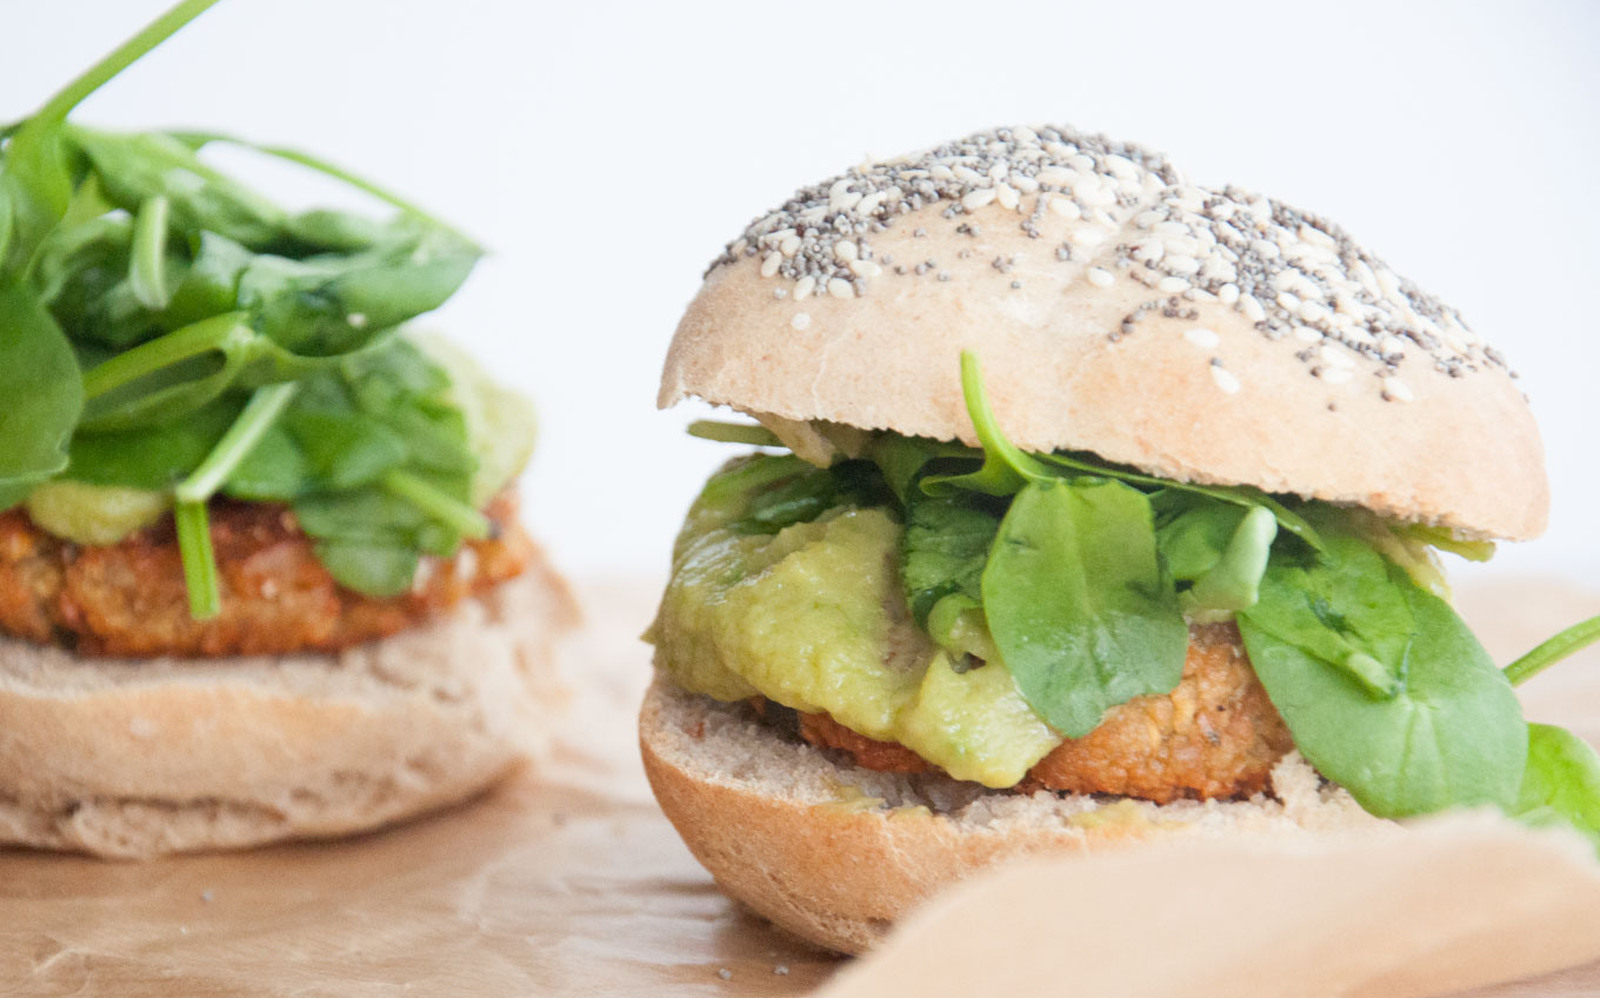 Falafel Burger With Avocado Sauce, Spinach, and Homemade Burger Buns [Vegan]